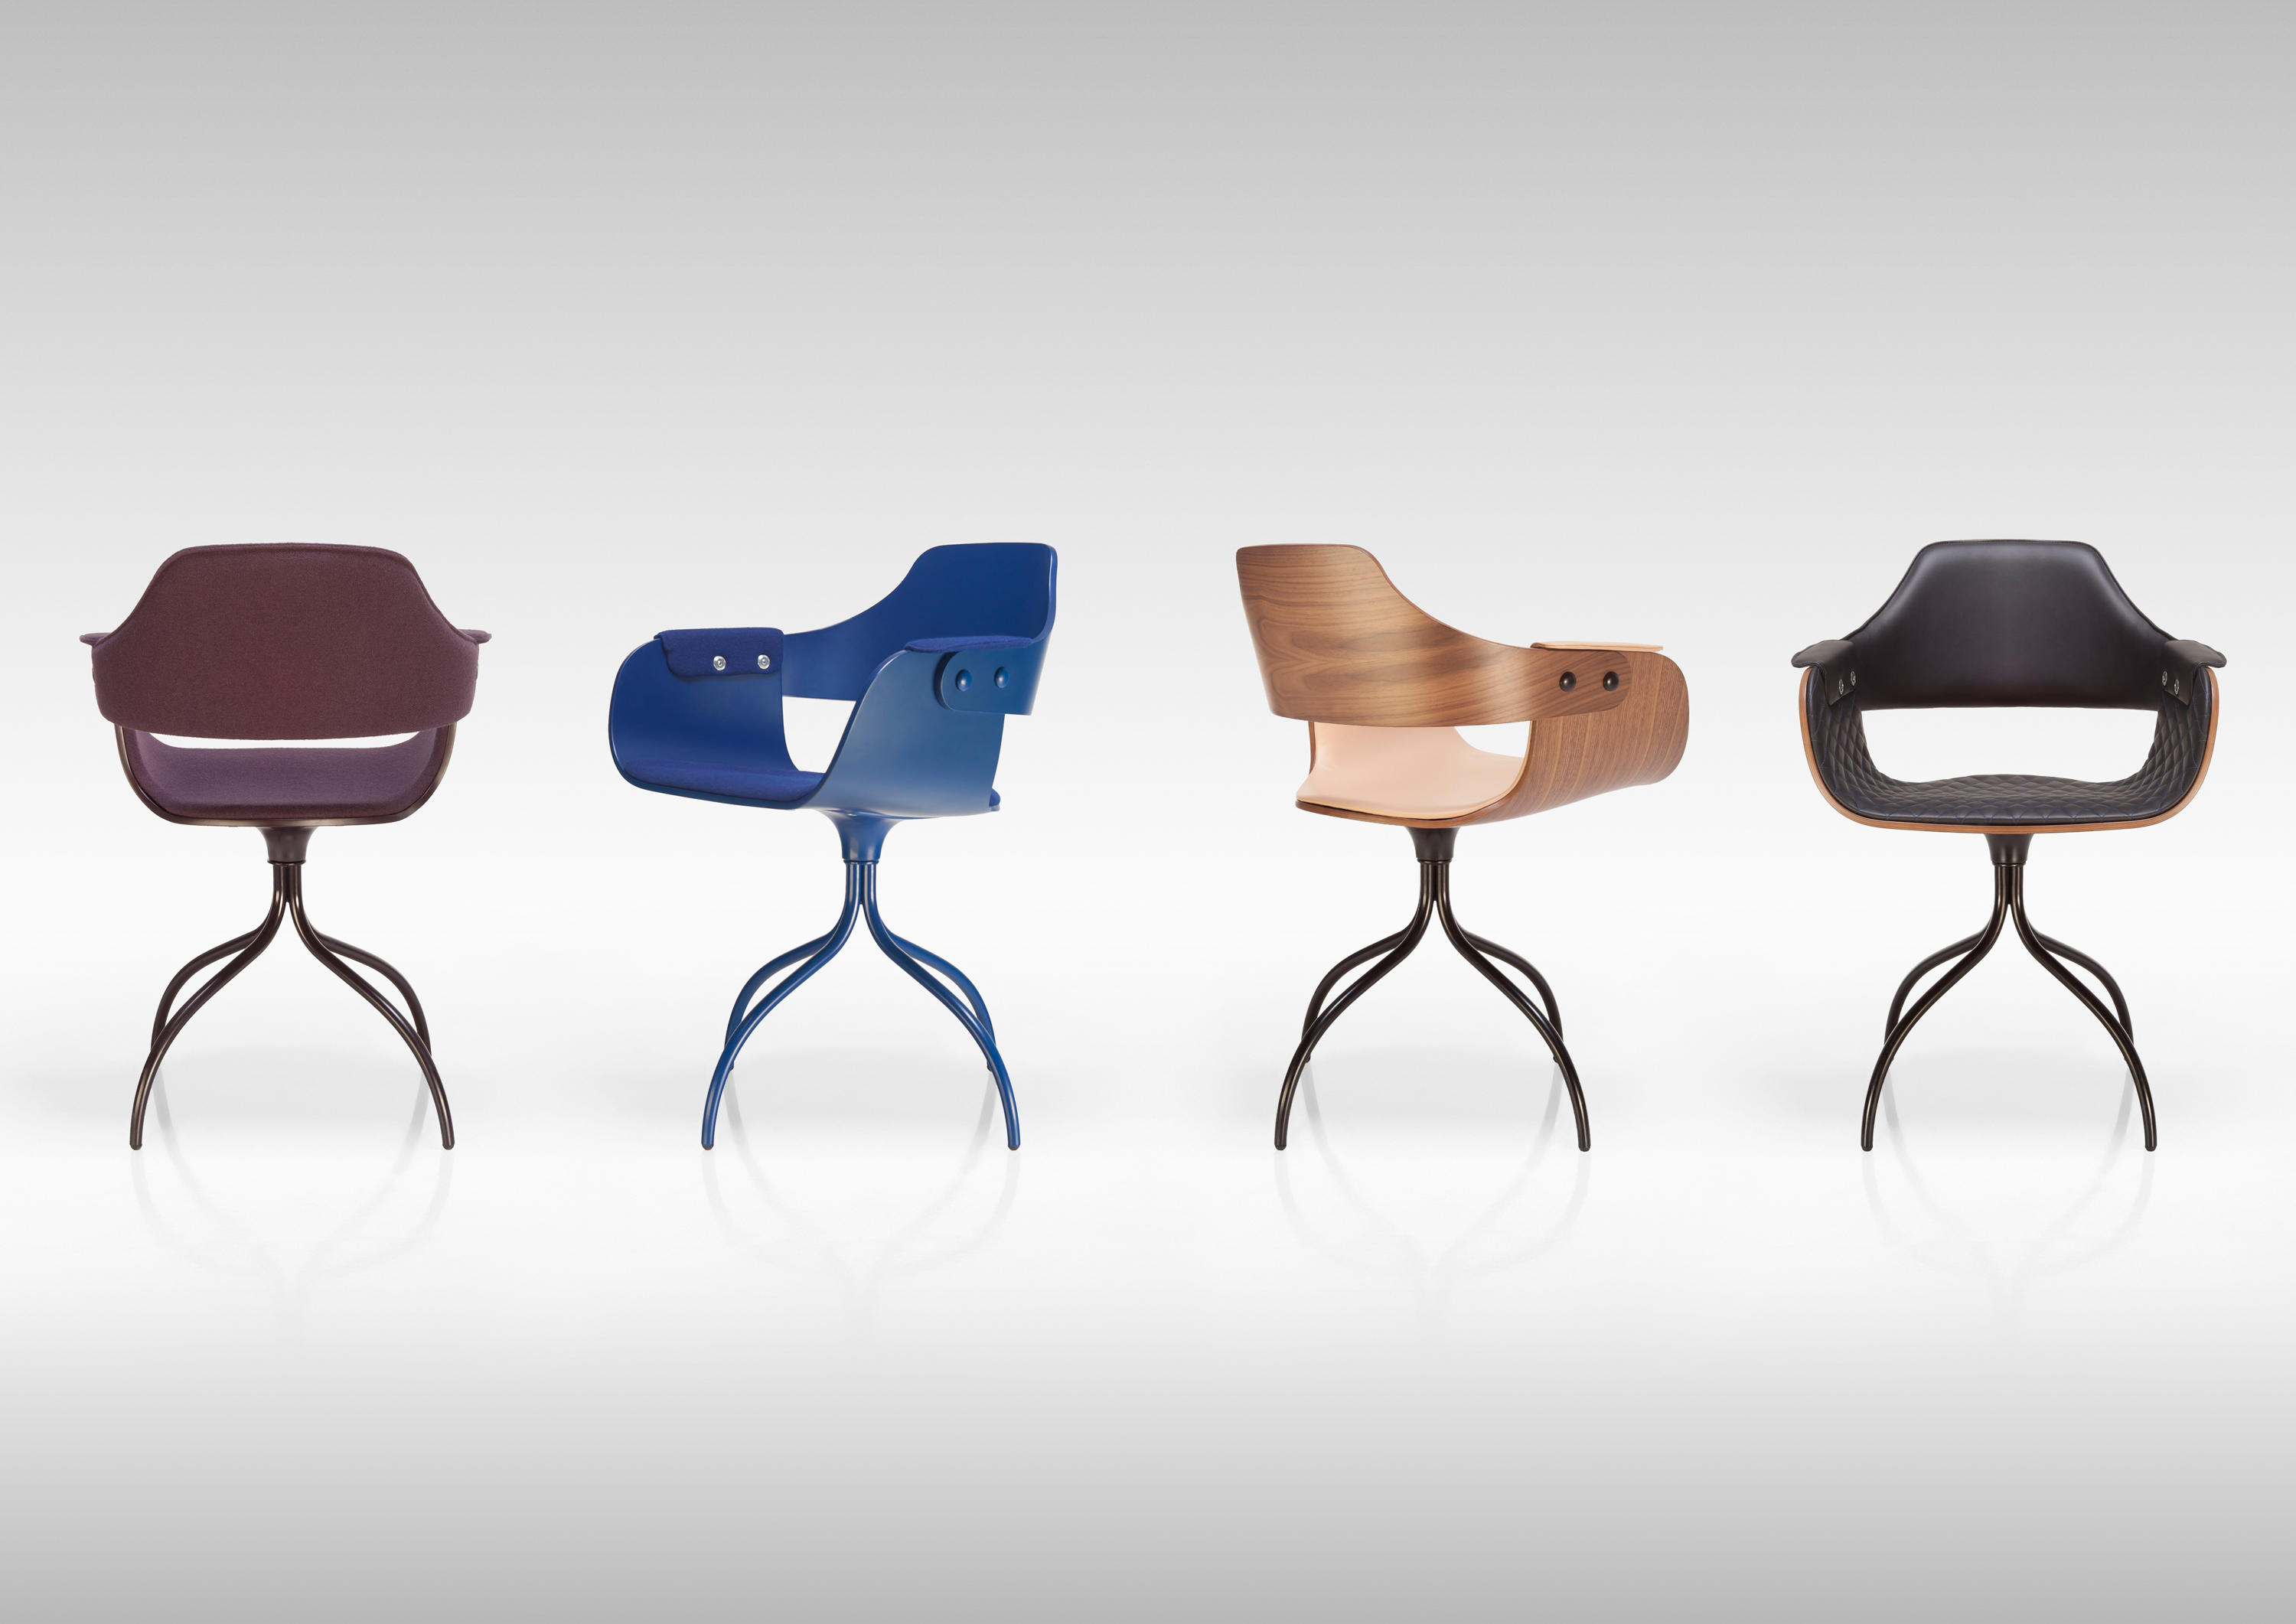 swivel chair price in bd fritz hansen office showtime act ii visitors chairs side from